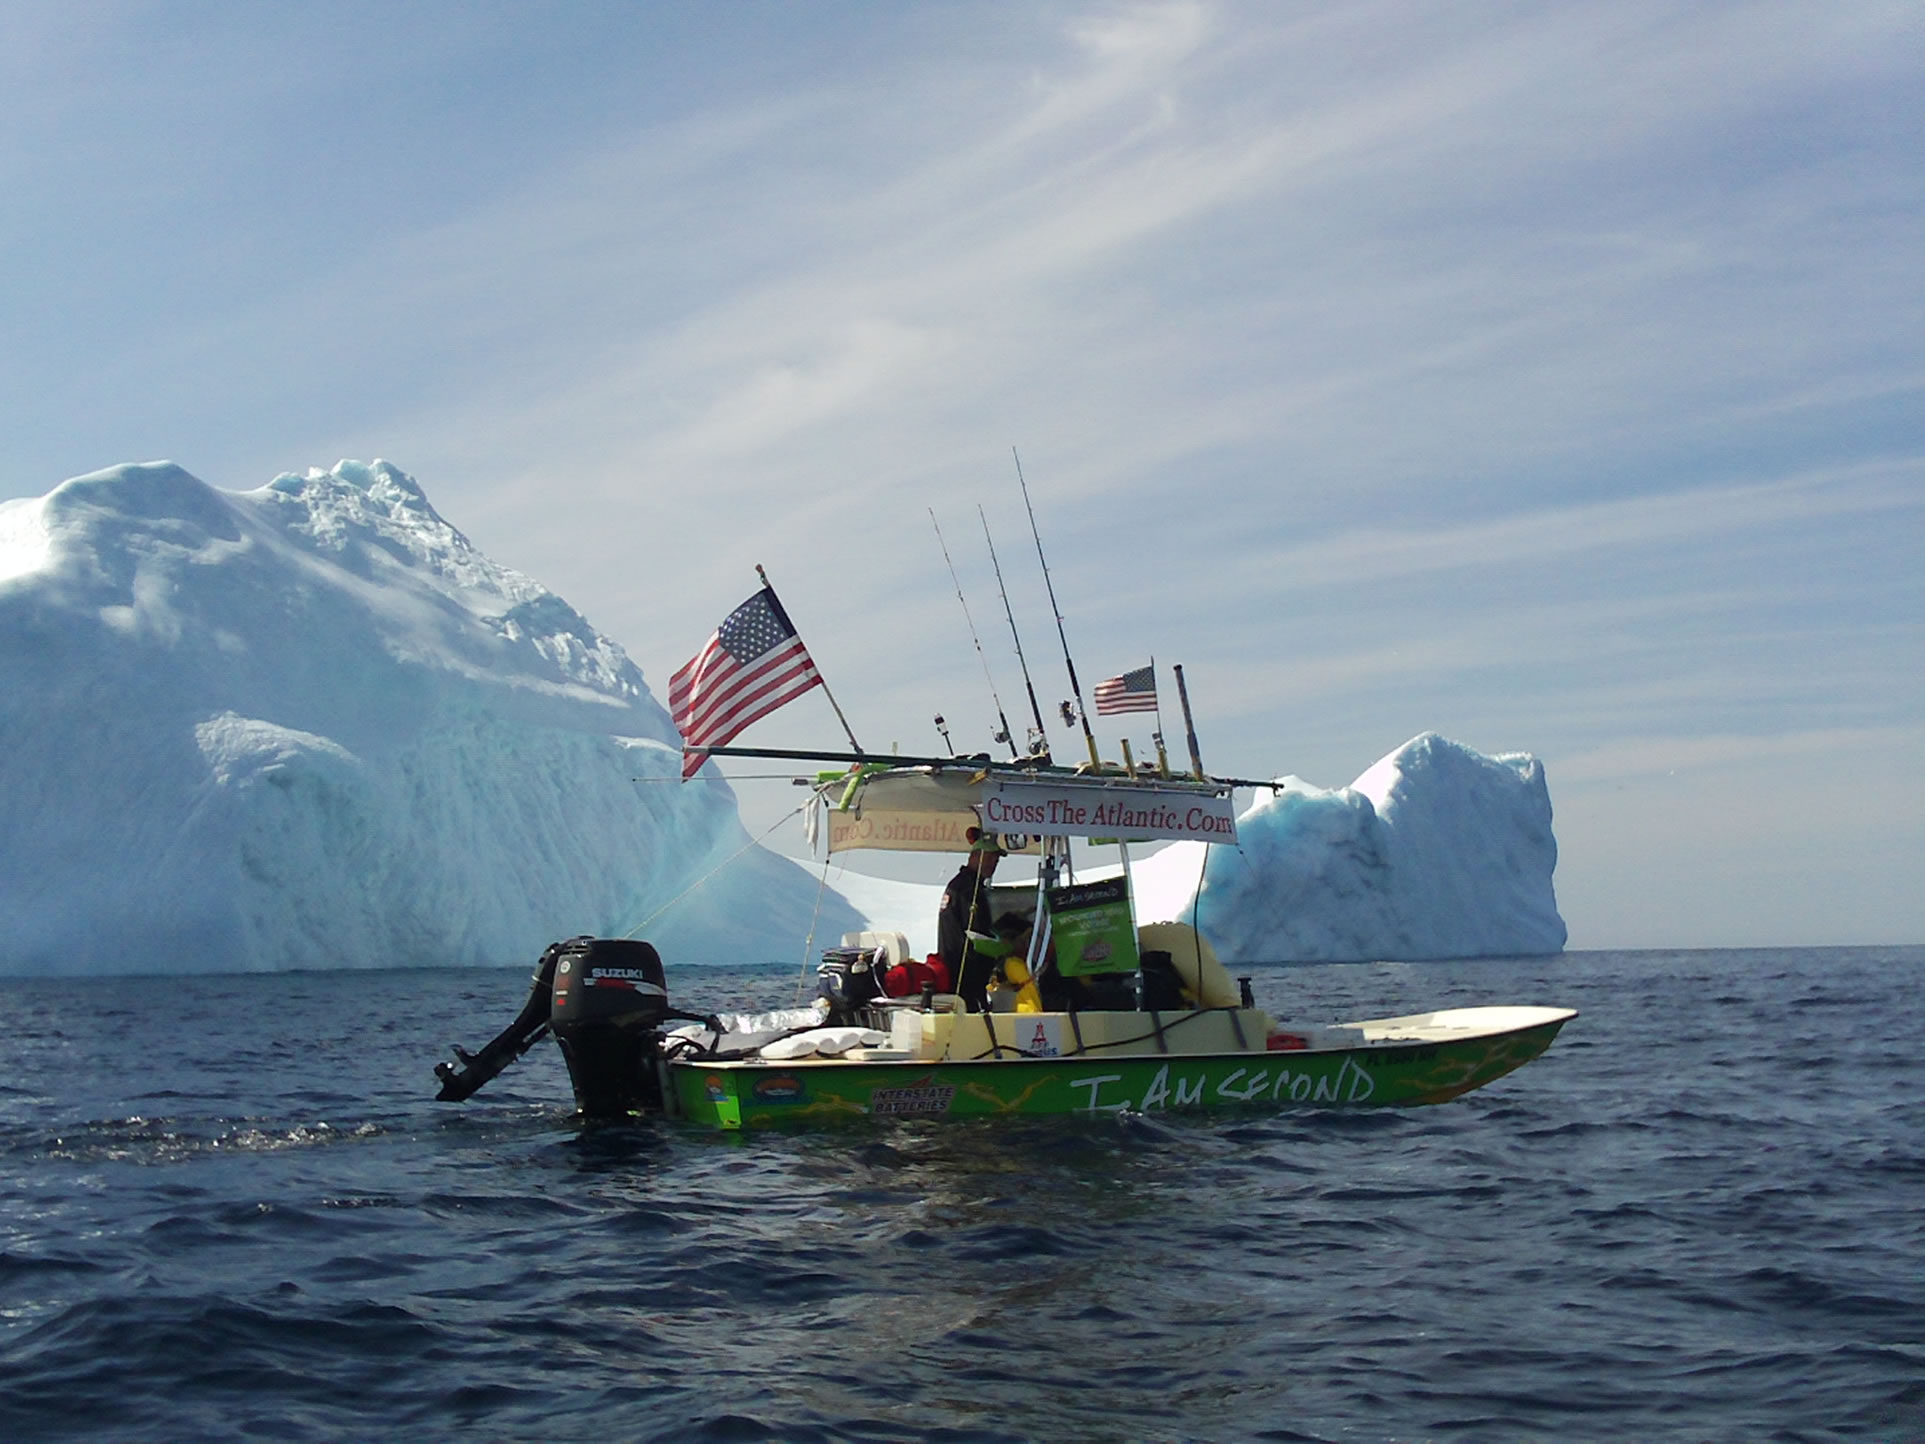 Smallest Power Boat To Cross The Atlantic Florida Brothers Set - Smallest ocean in the world